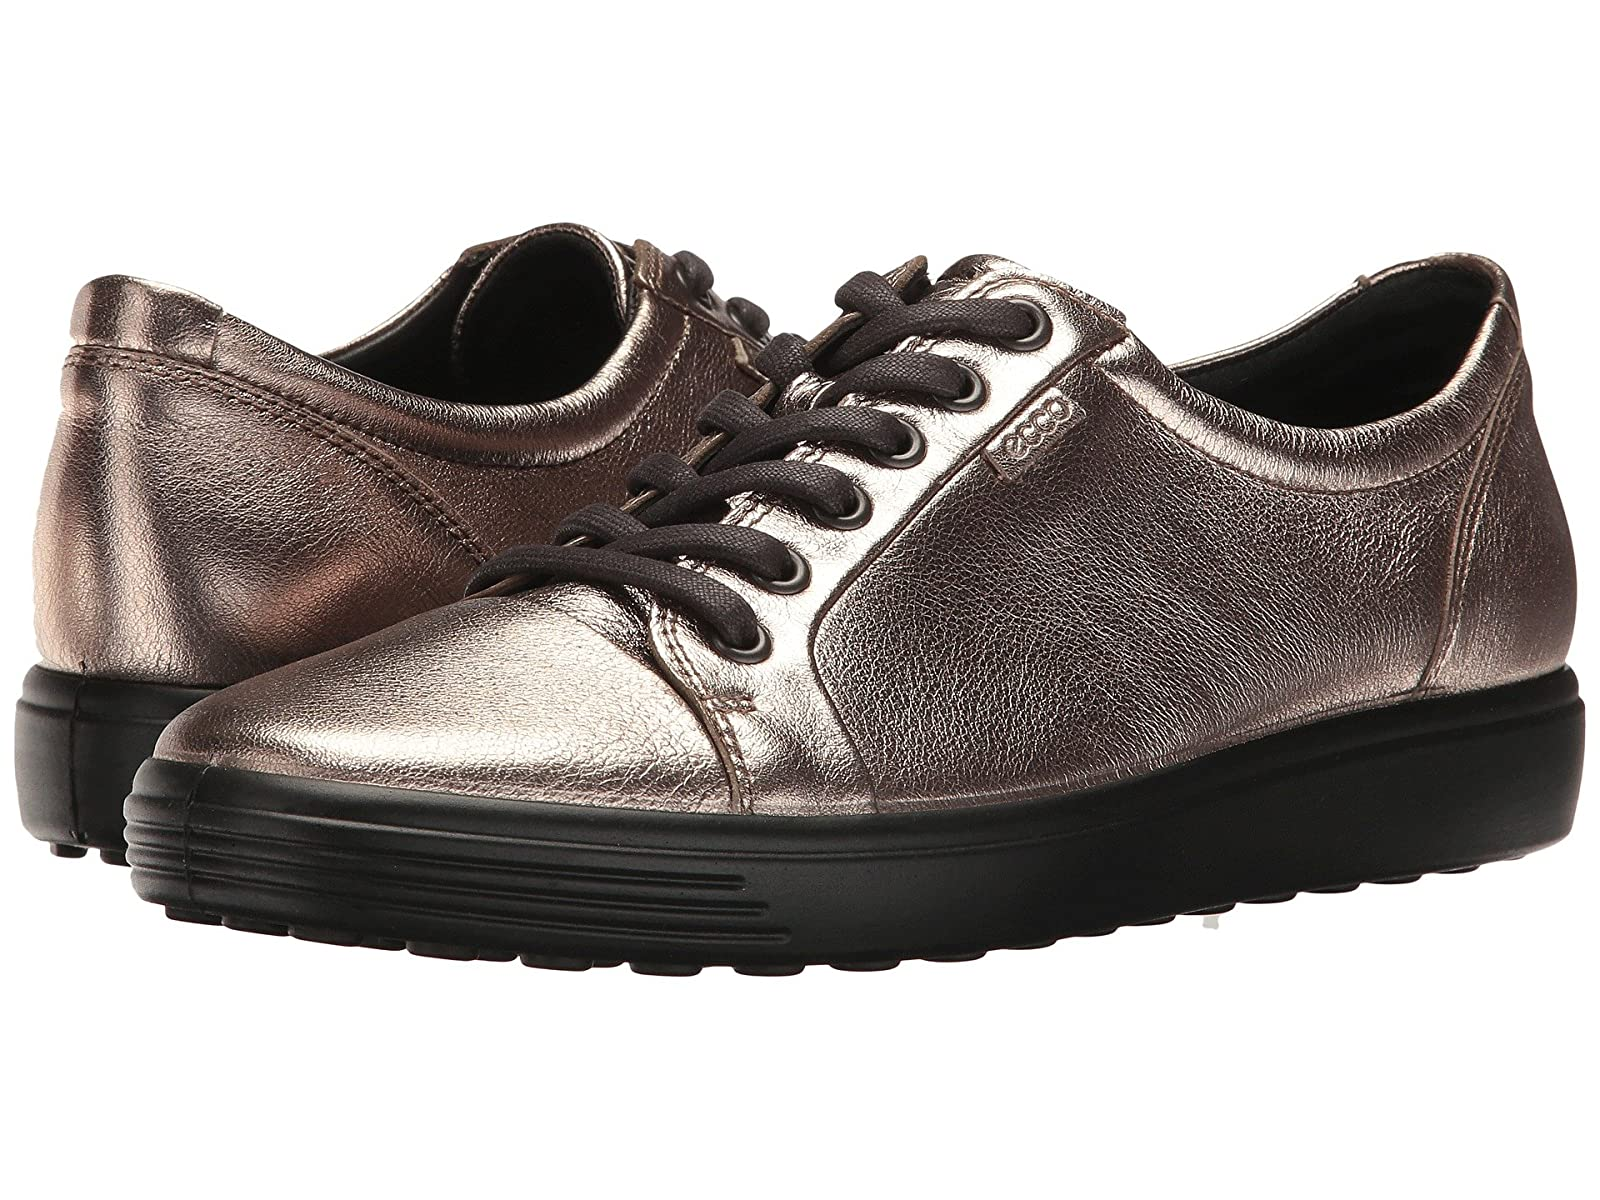 ECCO Soft 7 SneakerCheap and distinctive eye-catching shoes